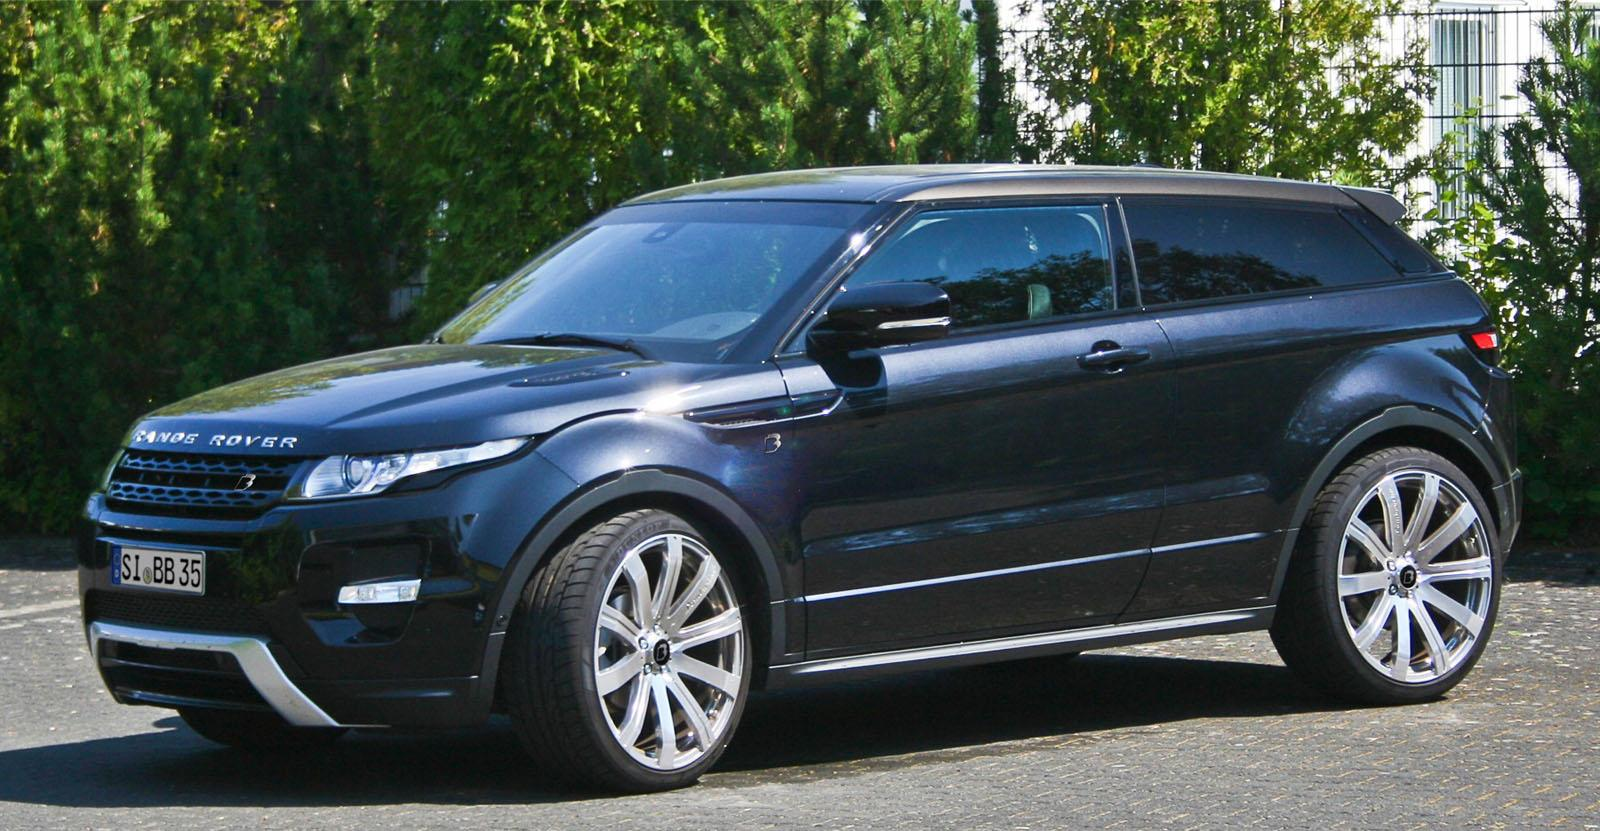 Range Rover Evoque by B&B